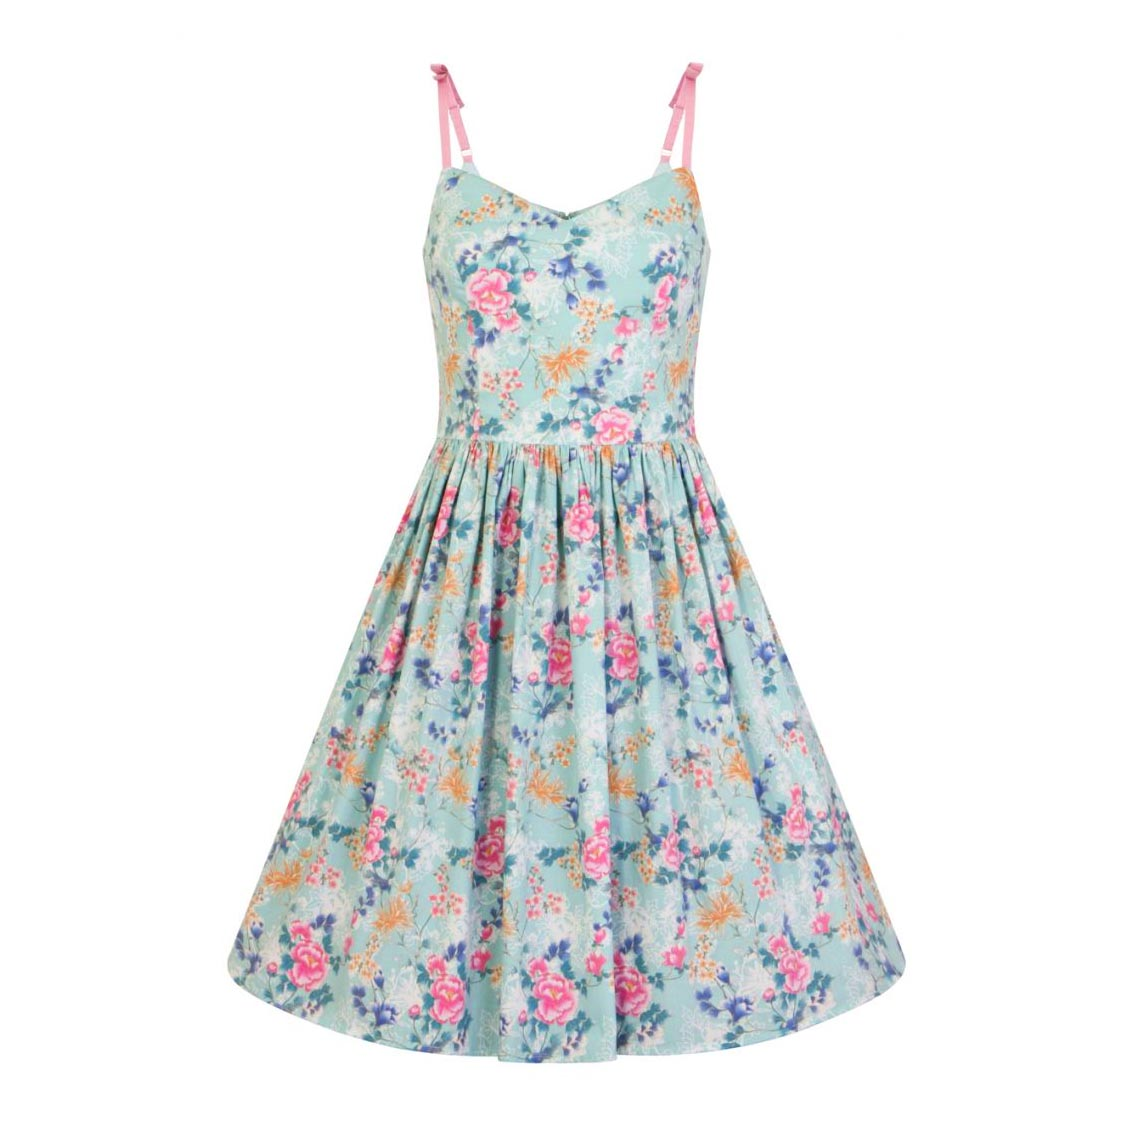 Hell-Bunny-50s-Mid-Length-Dress-Vintage-Blue-Pink-SAKURA-Flowers-Roses-All-Sizes thumbnail 18